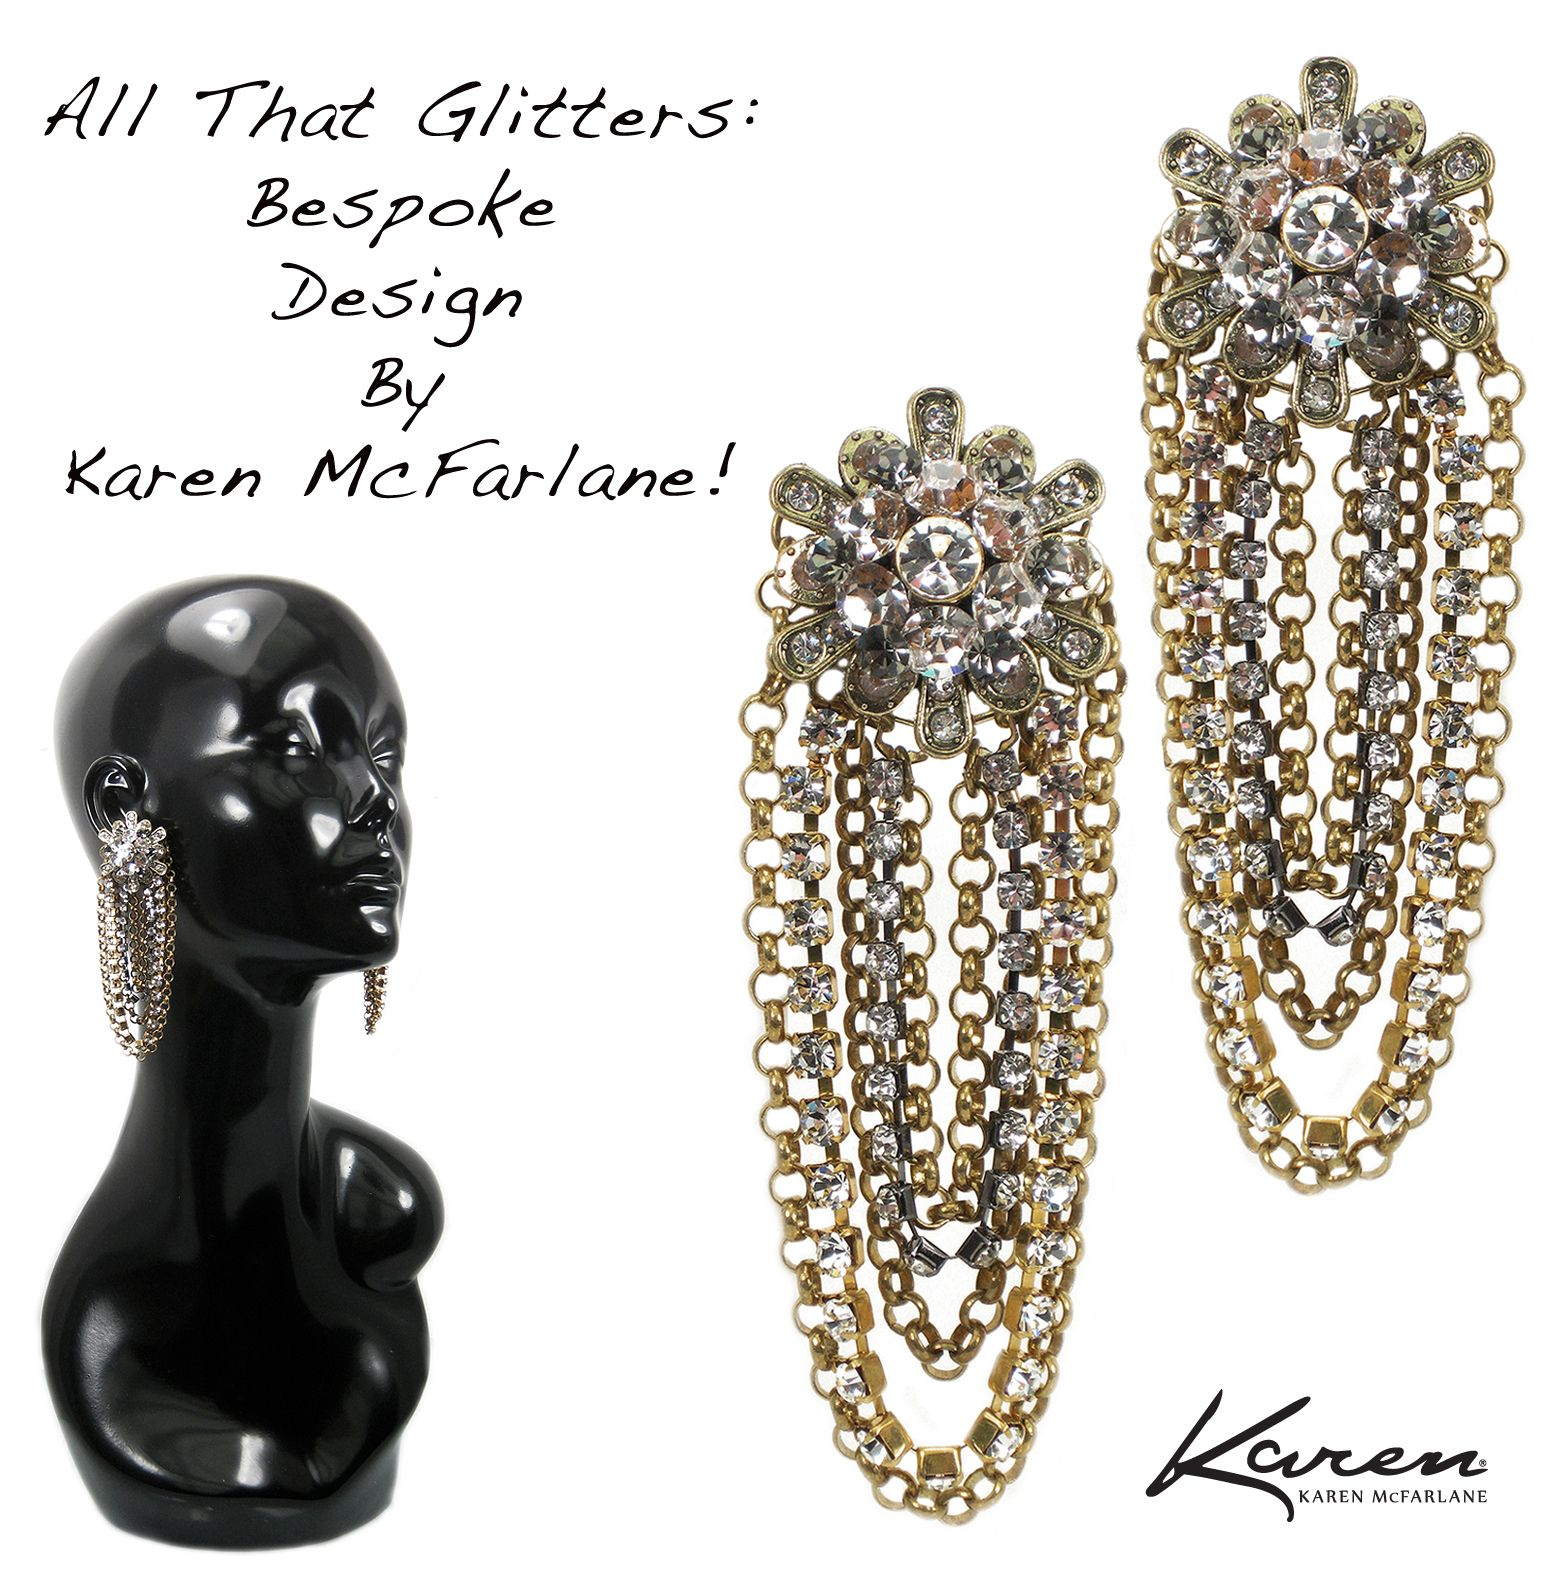 All That Glitters: Bespoke Design By Karen McFarlane! Customized statement earrings commissioned By Artemis Fashion Jewellery